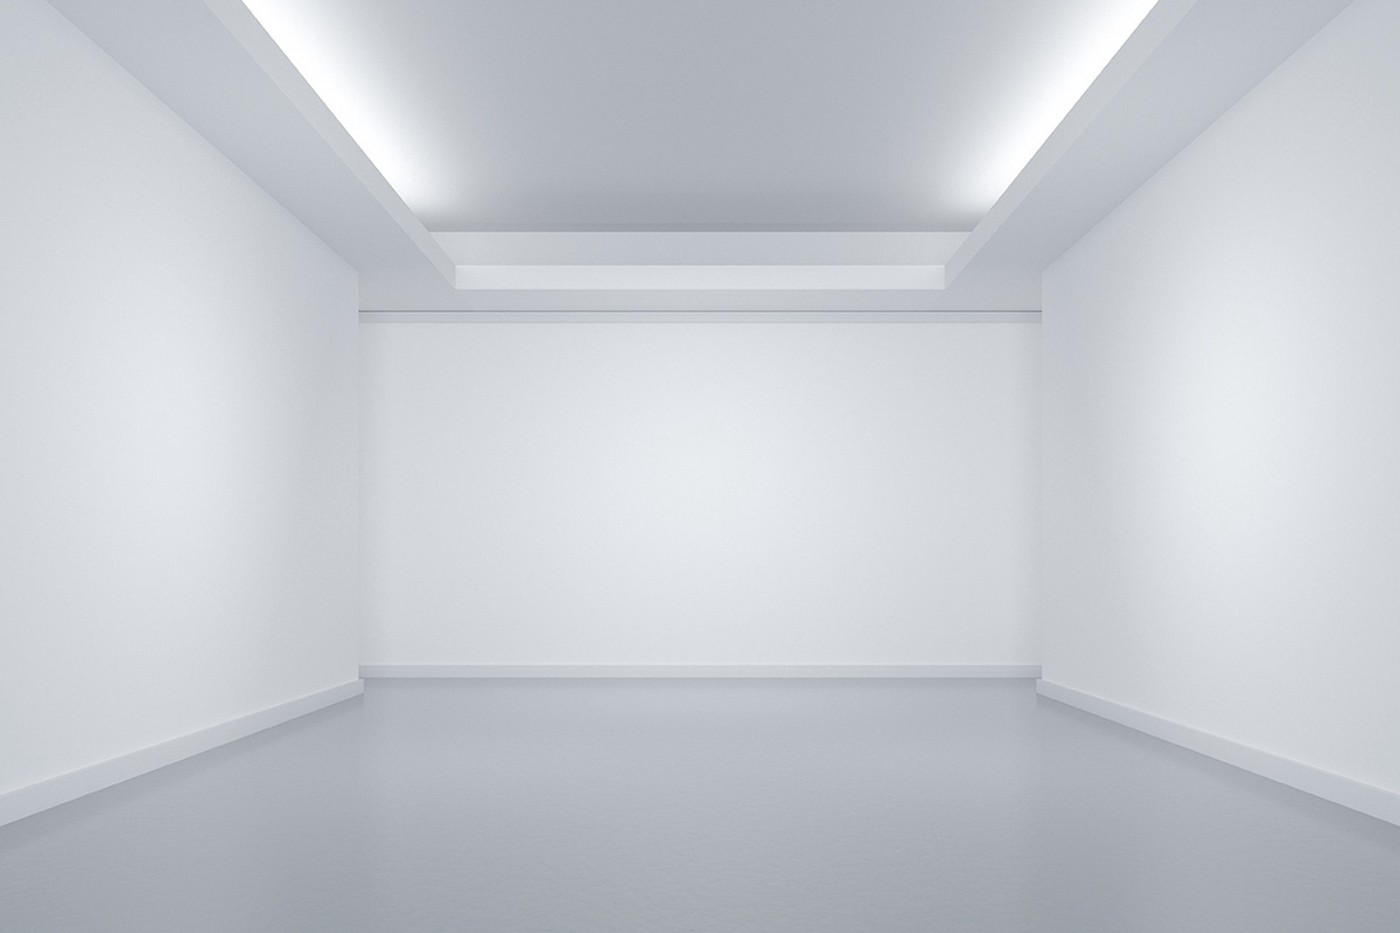 An empty white room.